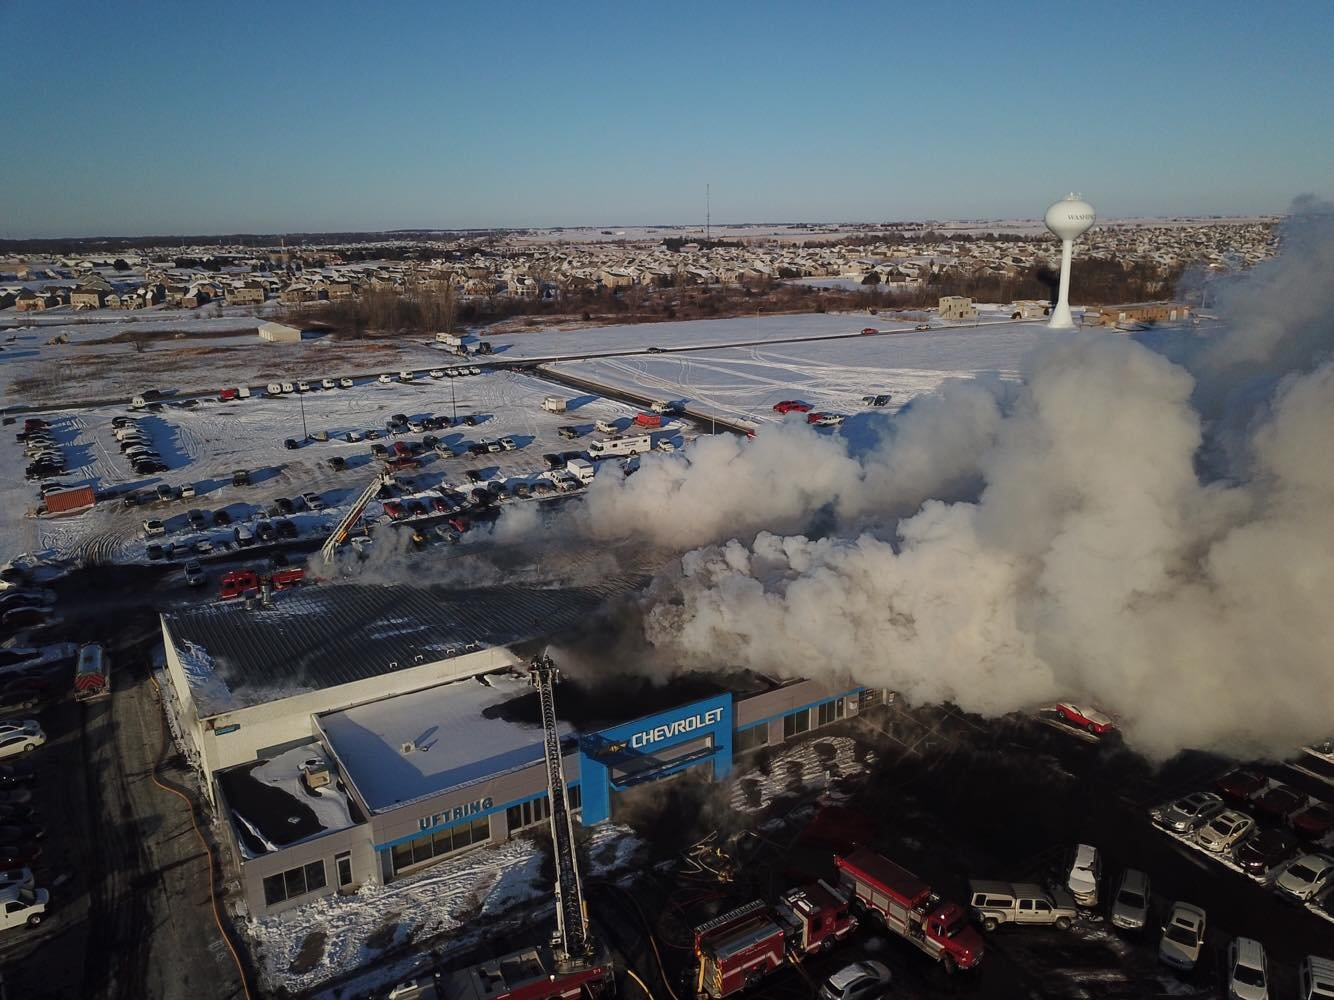 Large fire burns for hours at Uftring Chevrolet in Washington - WEEK